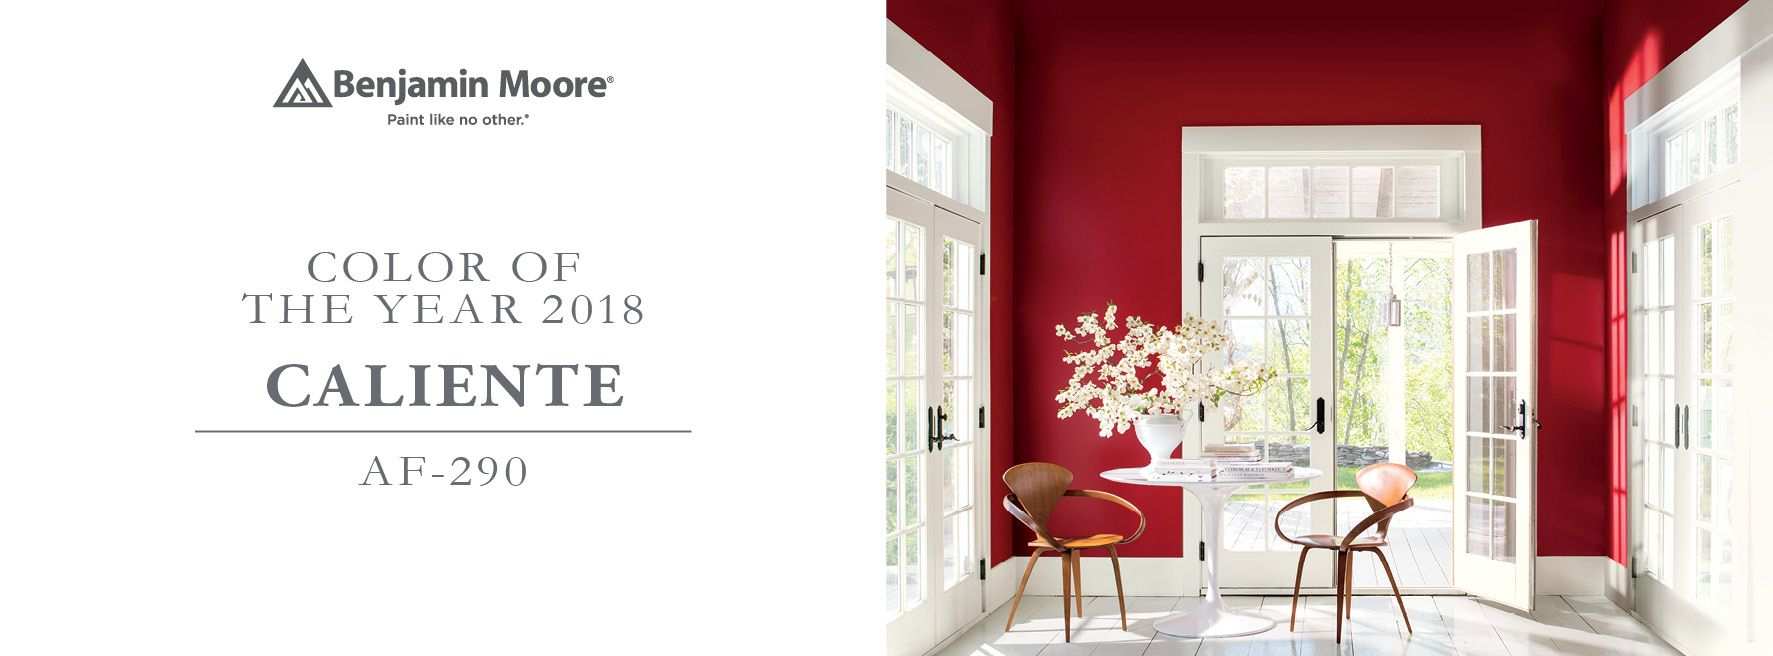 Benjamin Moore is paint like no other. | Westlake Ace Hardware ...